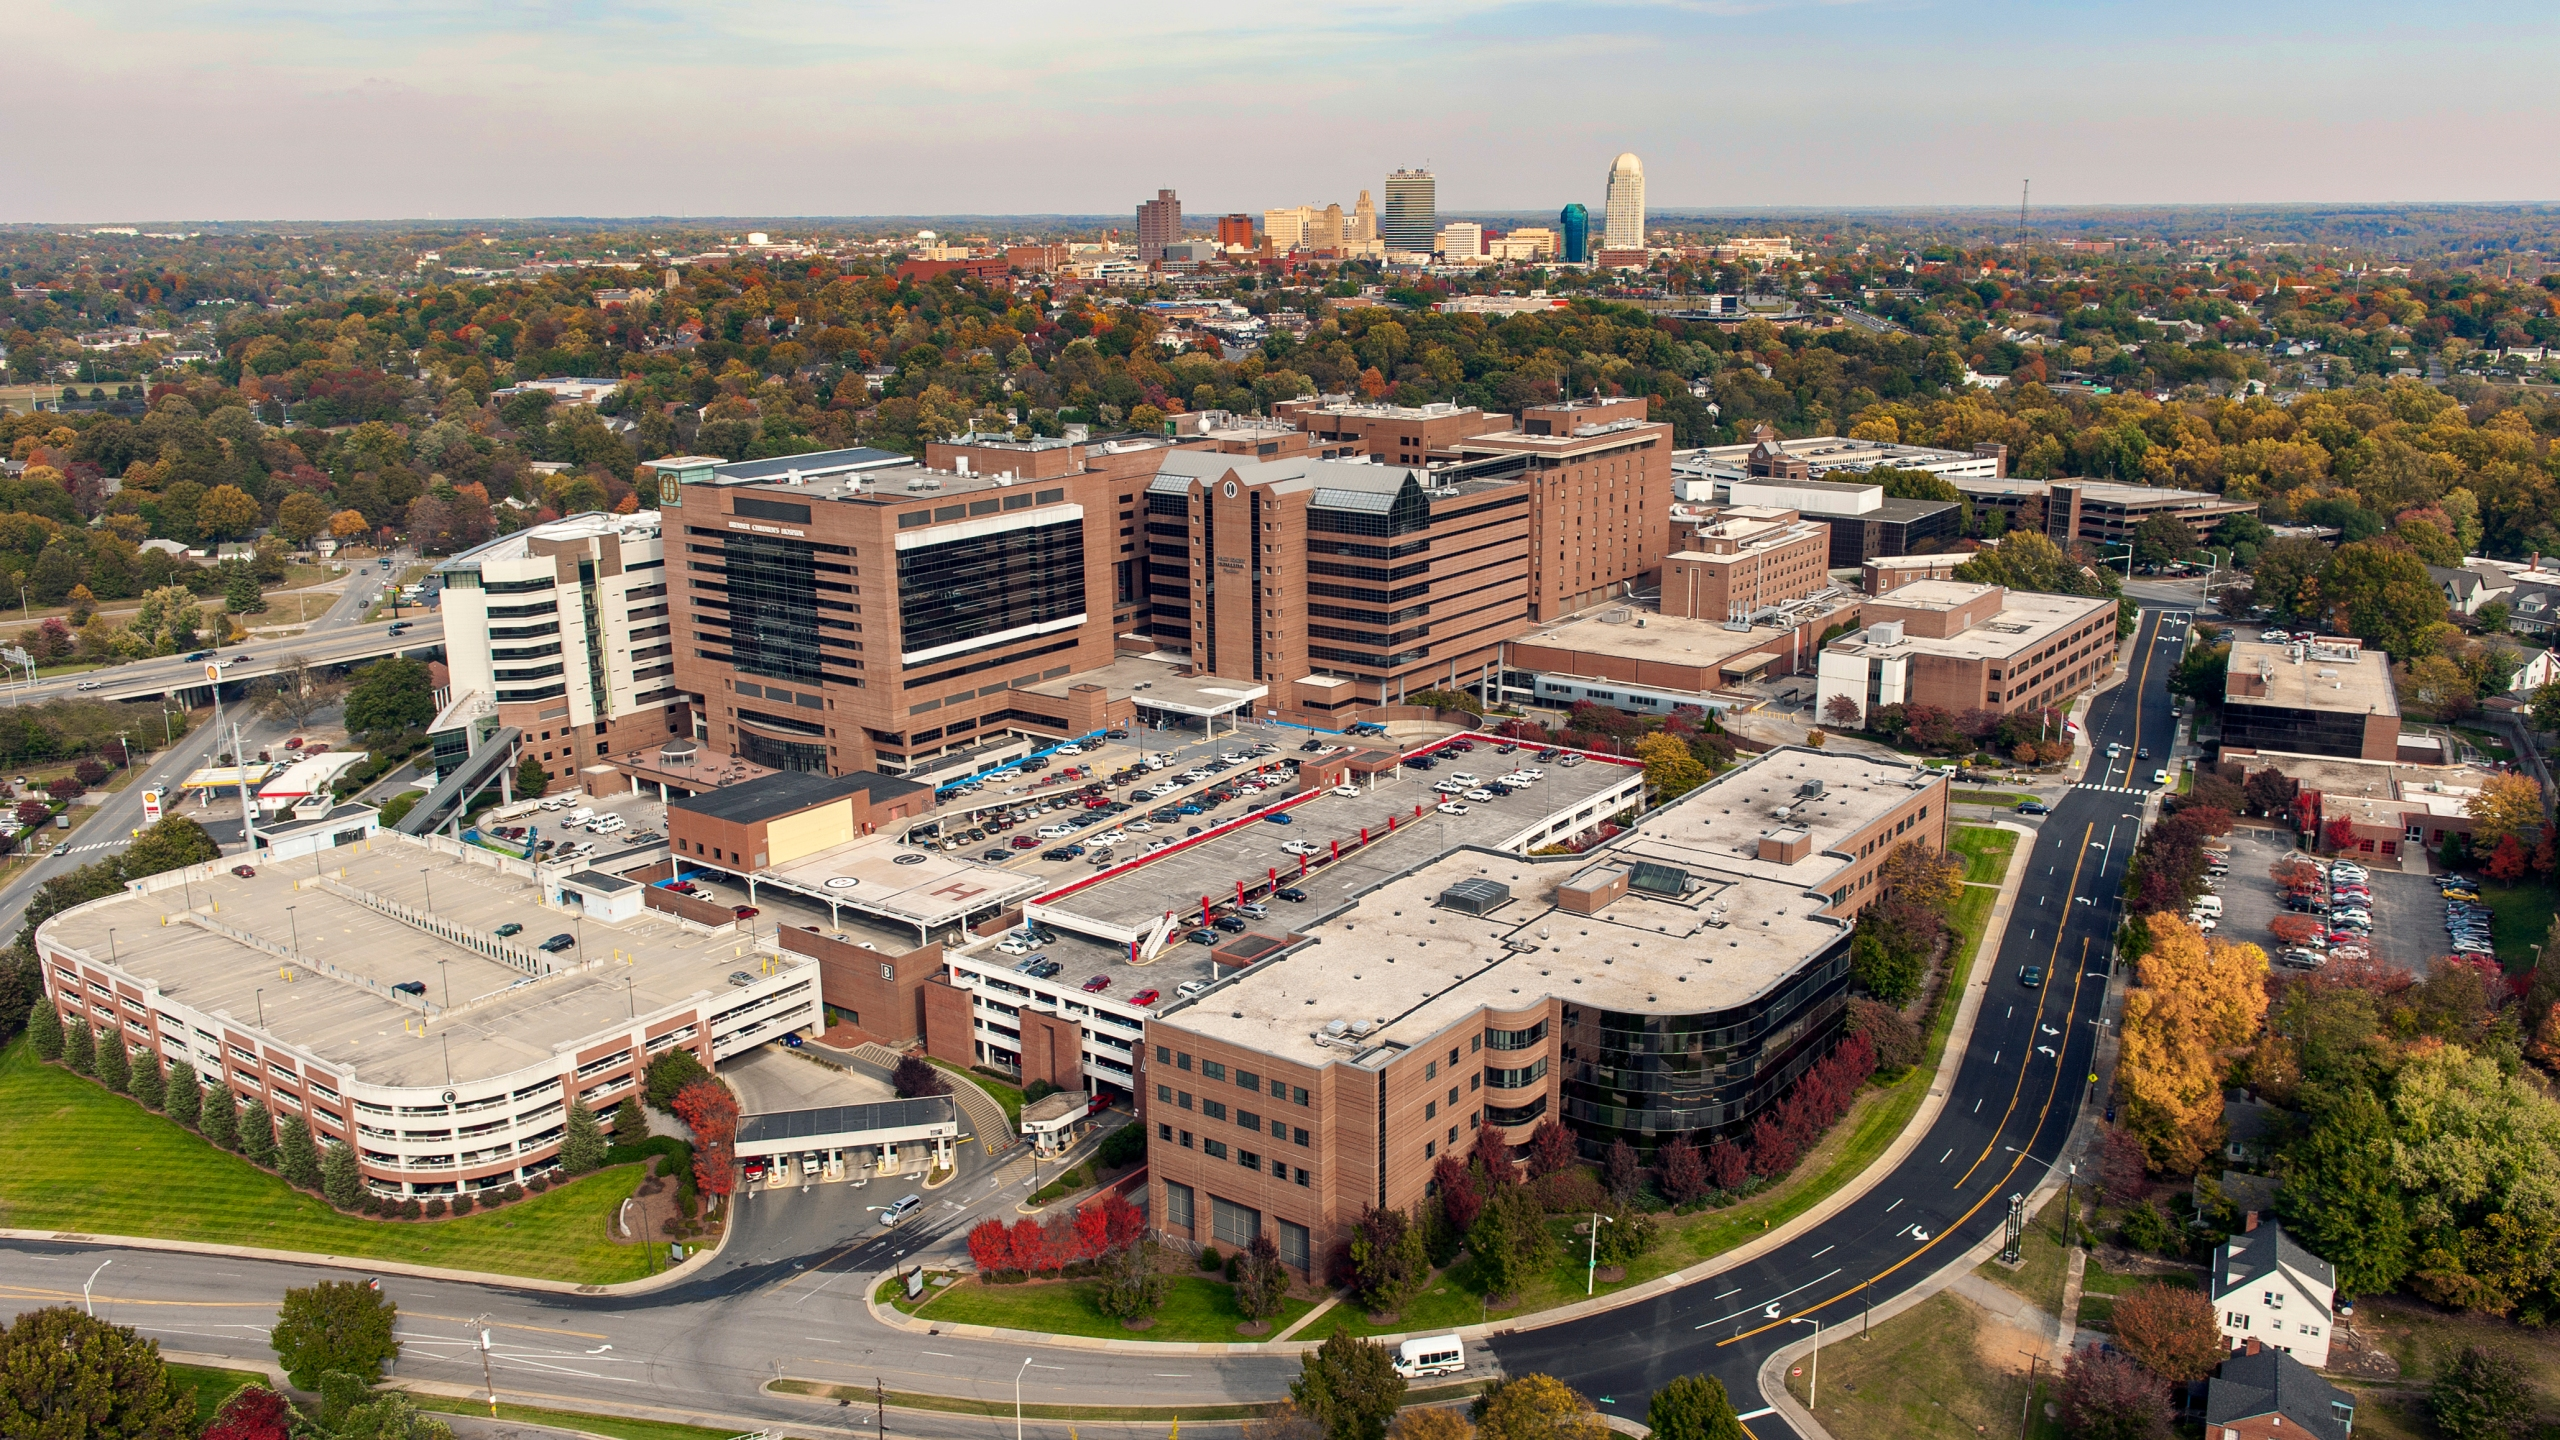 Aerial view of Wake Forest Baptist Medical Center with downtown Winston-Salem in the background, 2014. (Courtesy of Atrium Health)